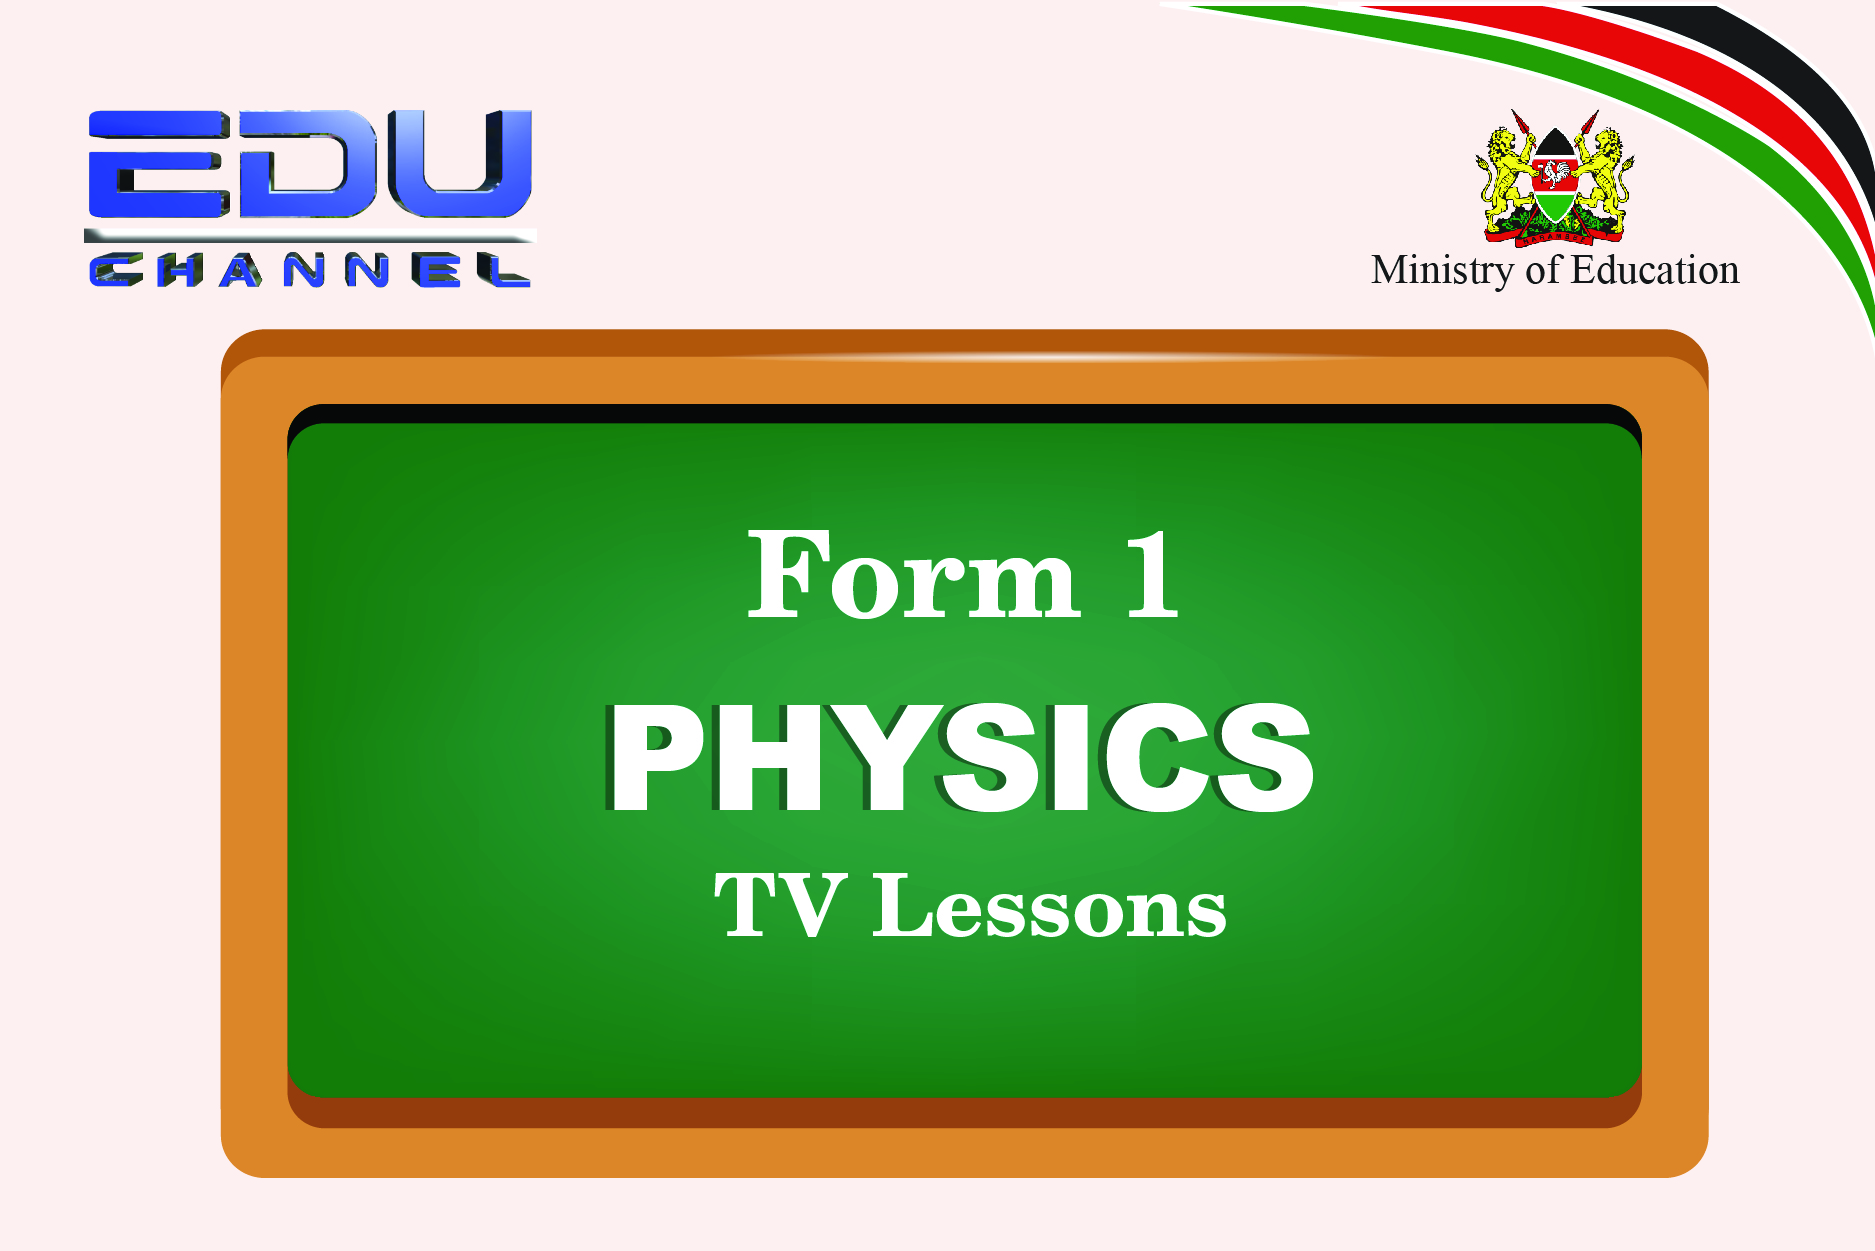 Form 1 Physics Lesson 3: Measuring Length